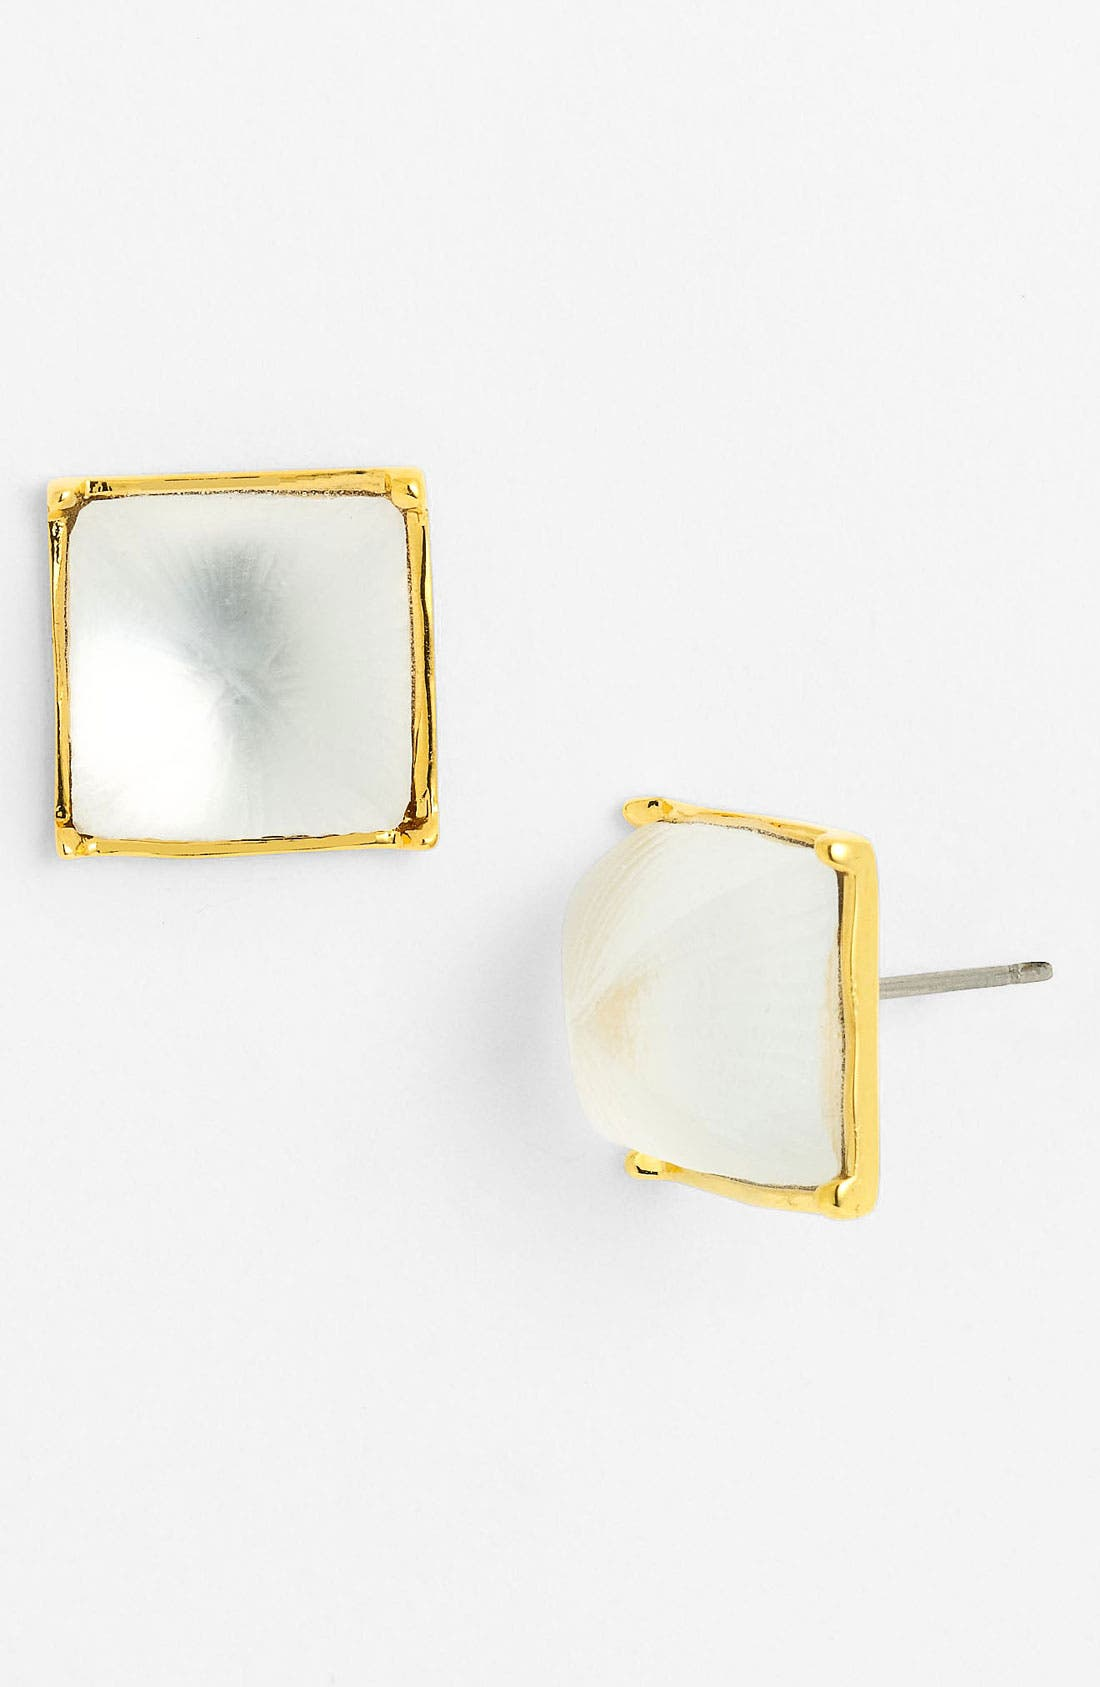 ALEXIS BITTAR 'Lucite<sup>®</sup>' Pyramid Stud Earrings, Main, color, 040